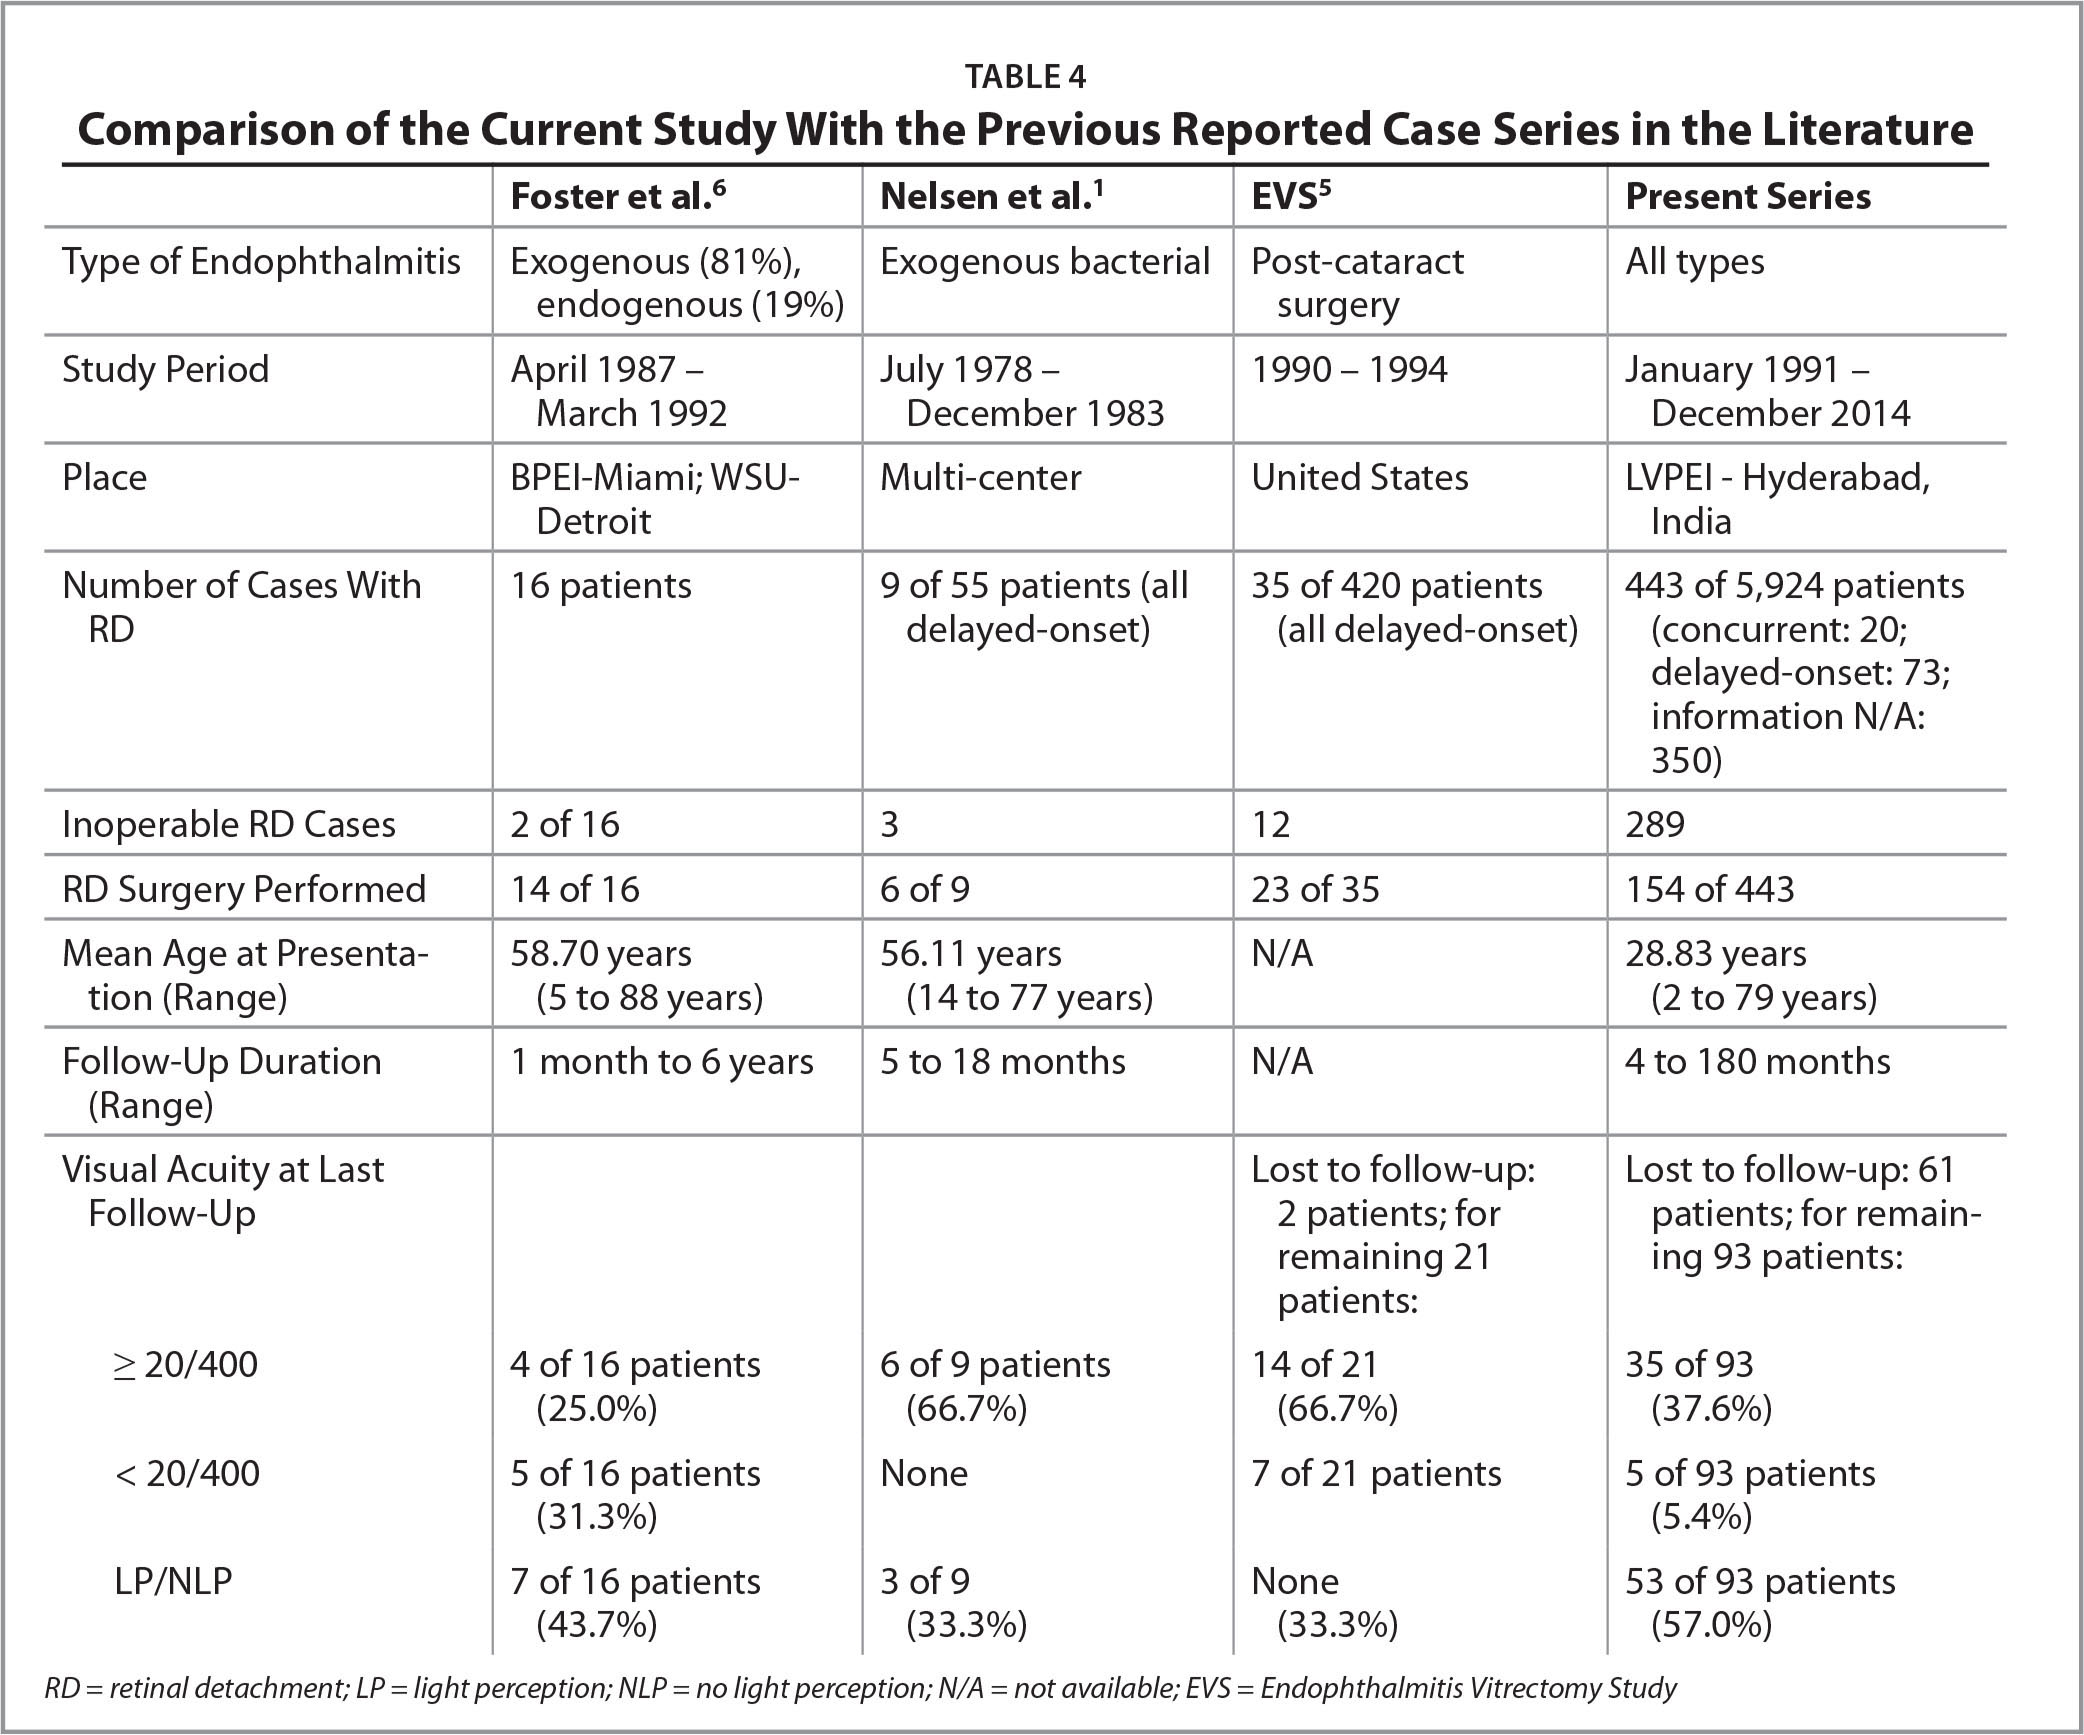 Comparison of the Current Study With the Previous Reported Case Series in the Literature